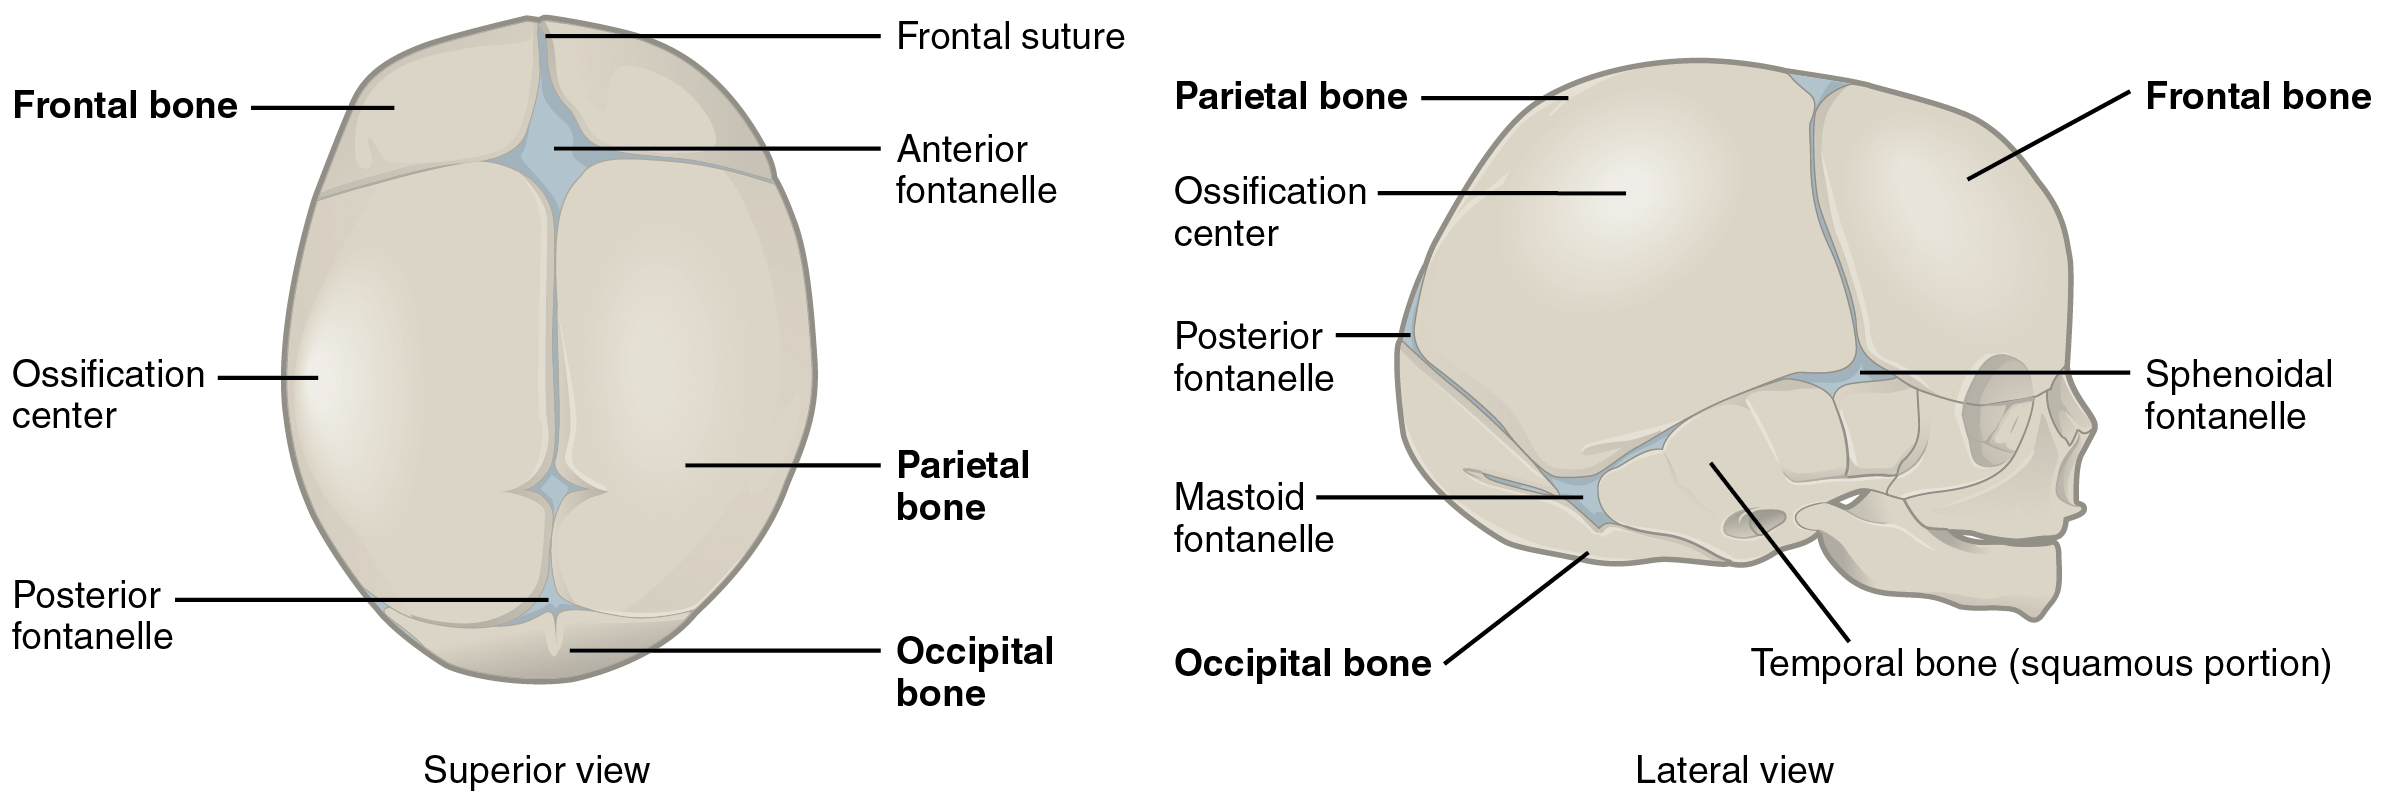 Embryonic Development Of The Axial Skeleton Anatomy And Physiology